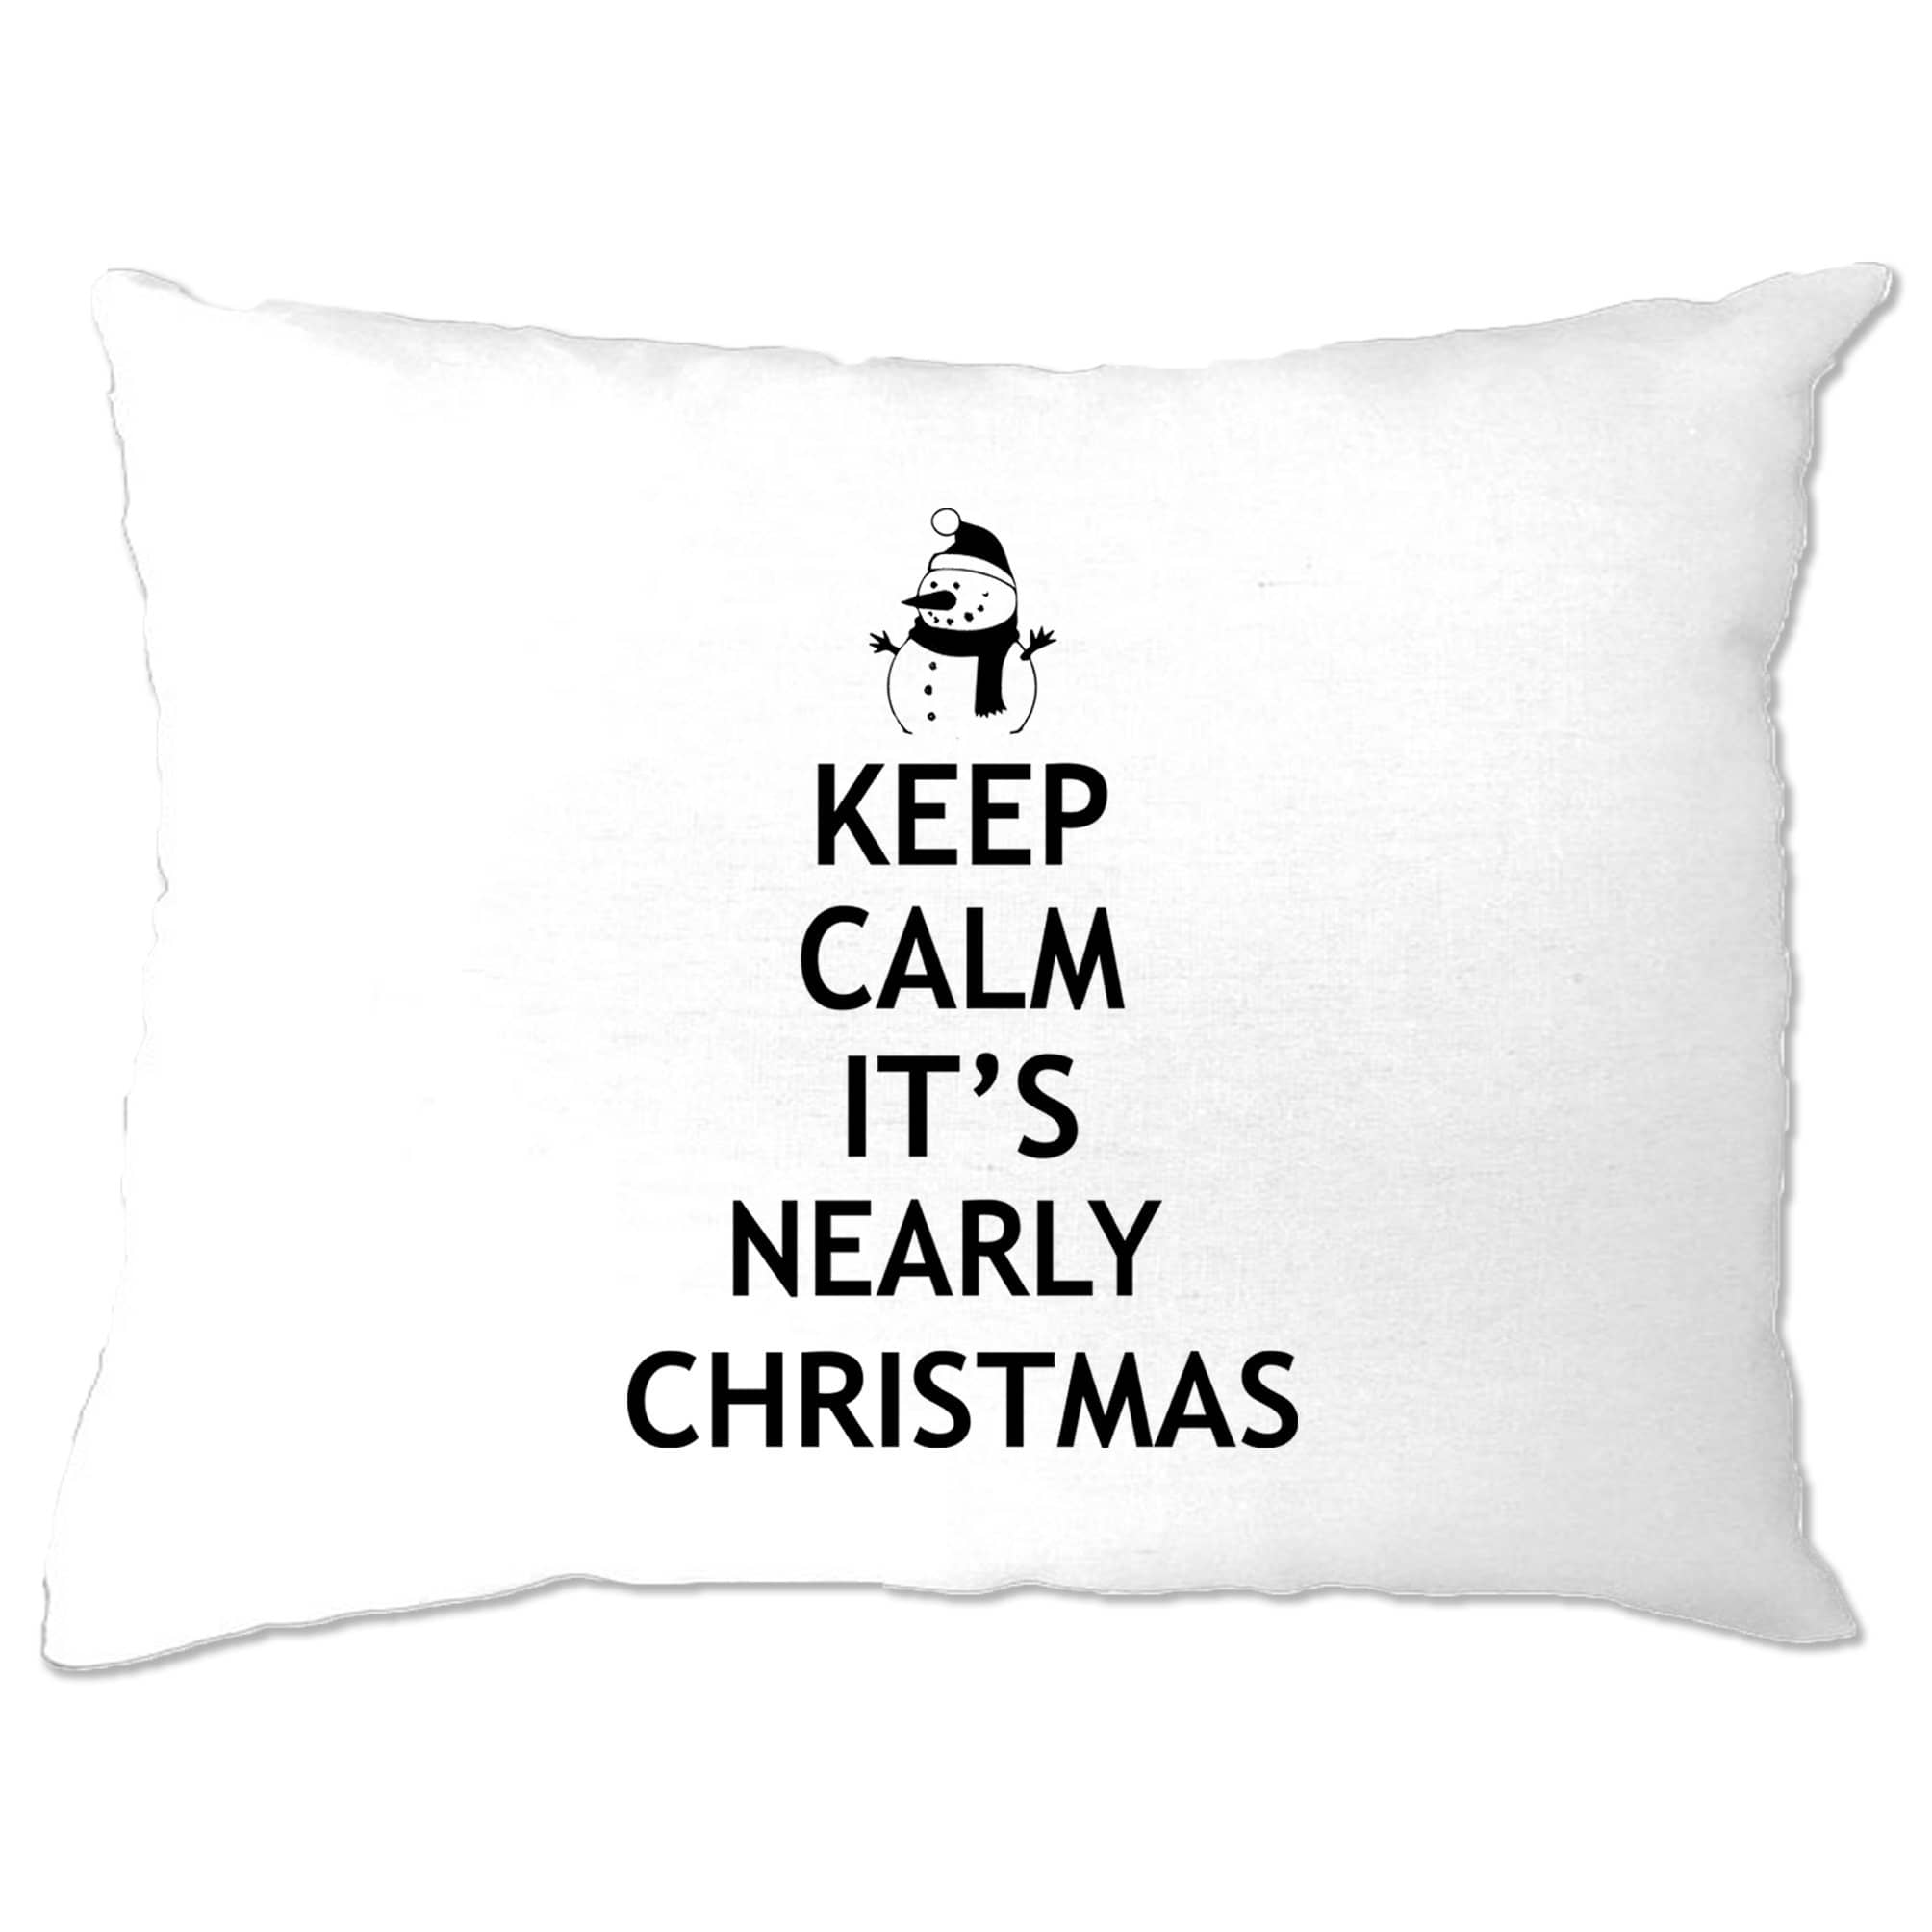 Christmas Pillow Case Keep Calm It's Nearly Xmas